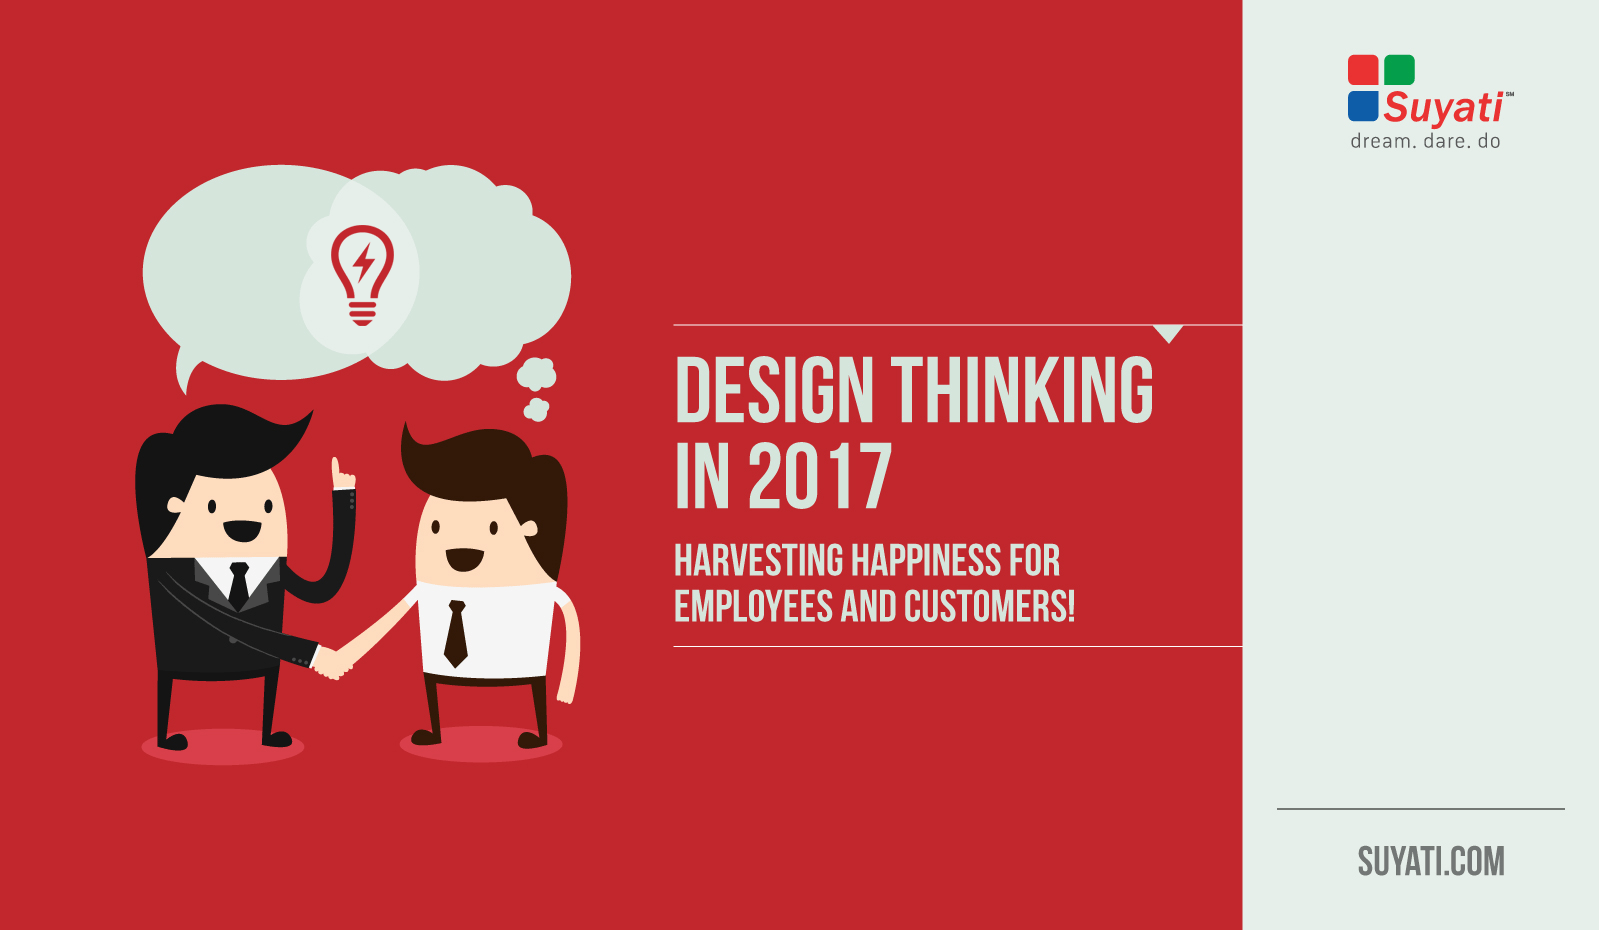 Design Thinking What does 2017 have in store for enterprises